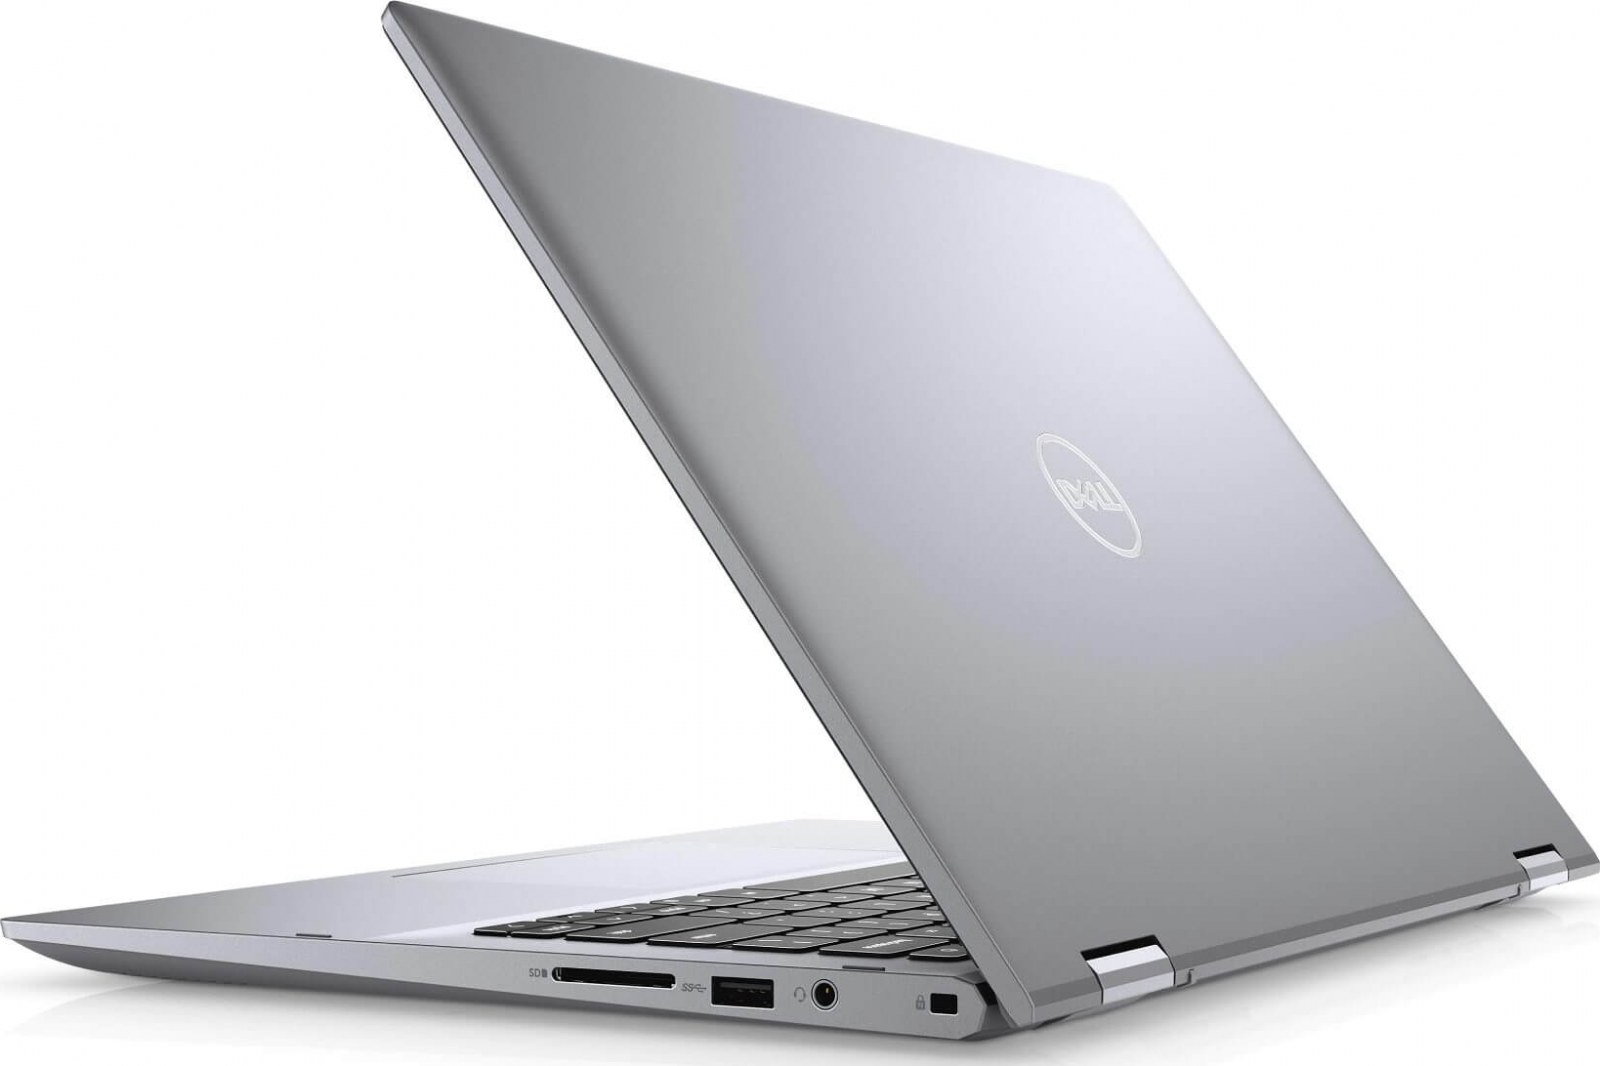 Inspiron (14 5406 2-in-1) photo 9